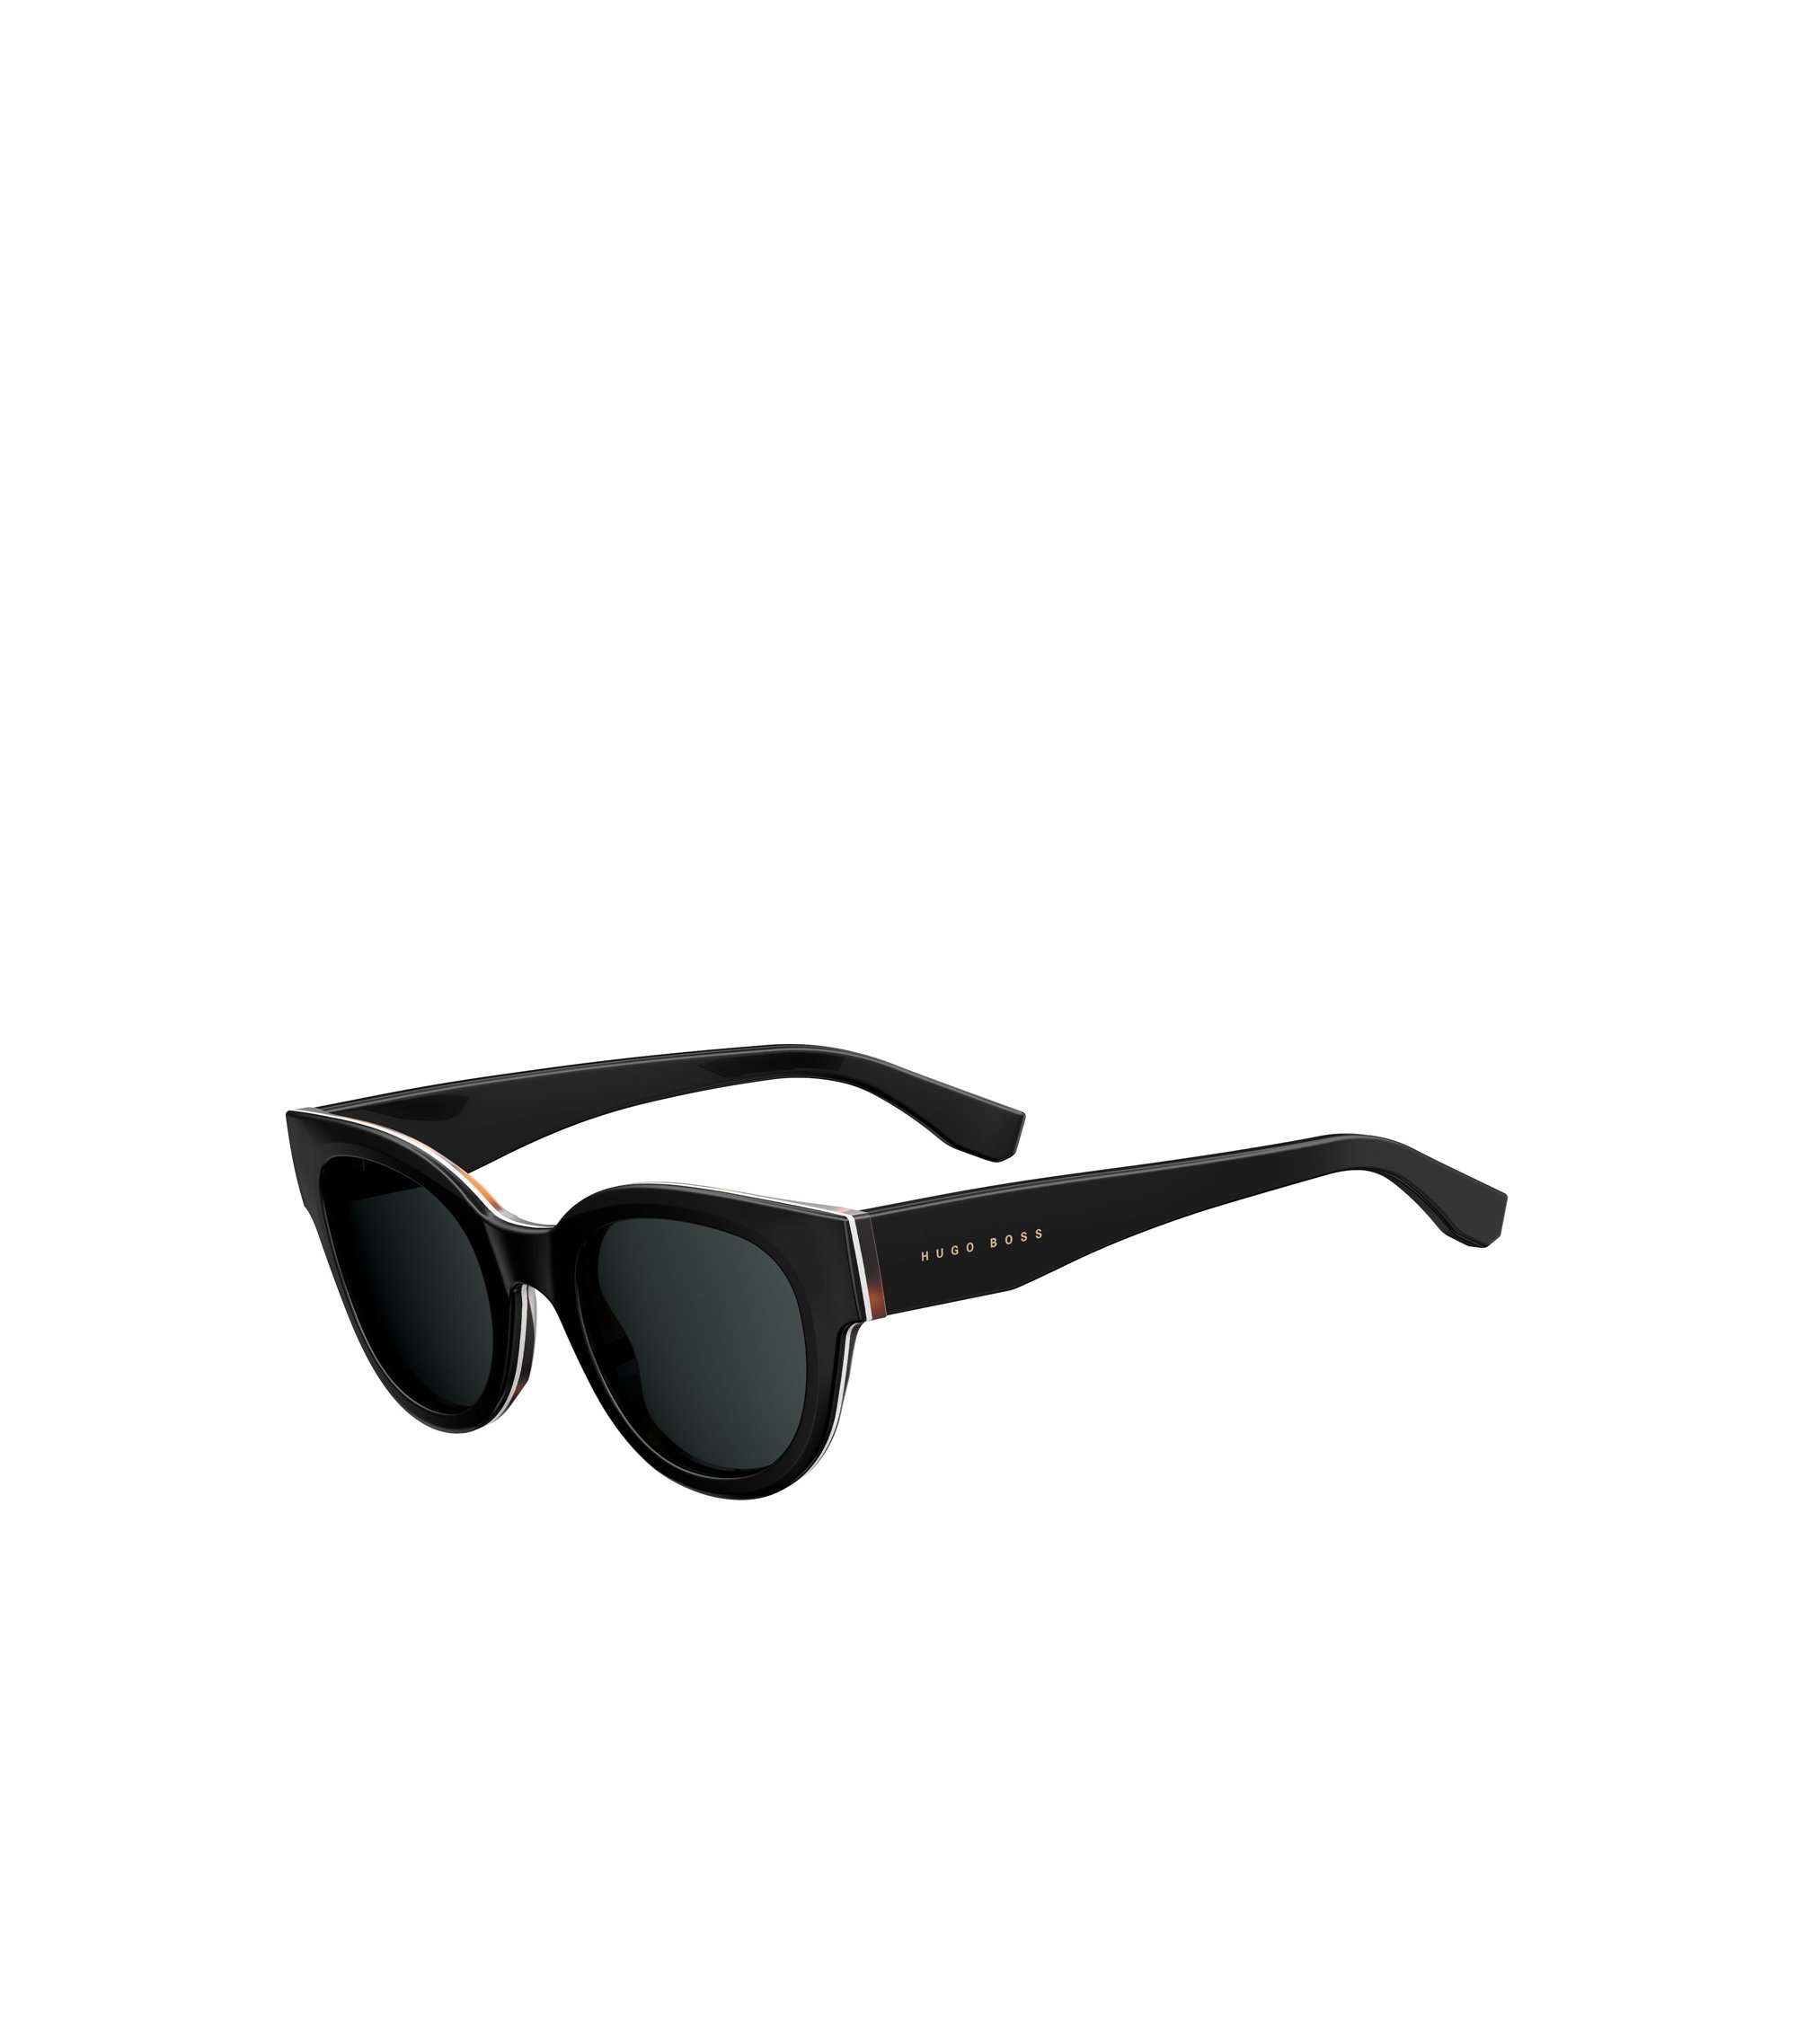 Black Lens Block Cat Eye Sunglasses | BOSS 0888S, Assorted-Pre-Pack